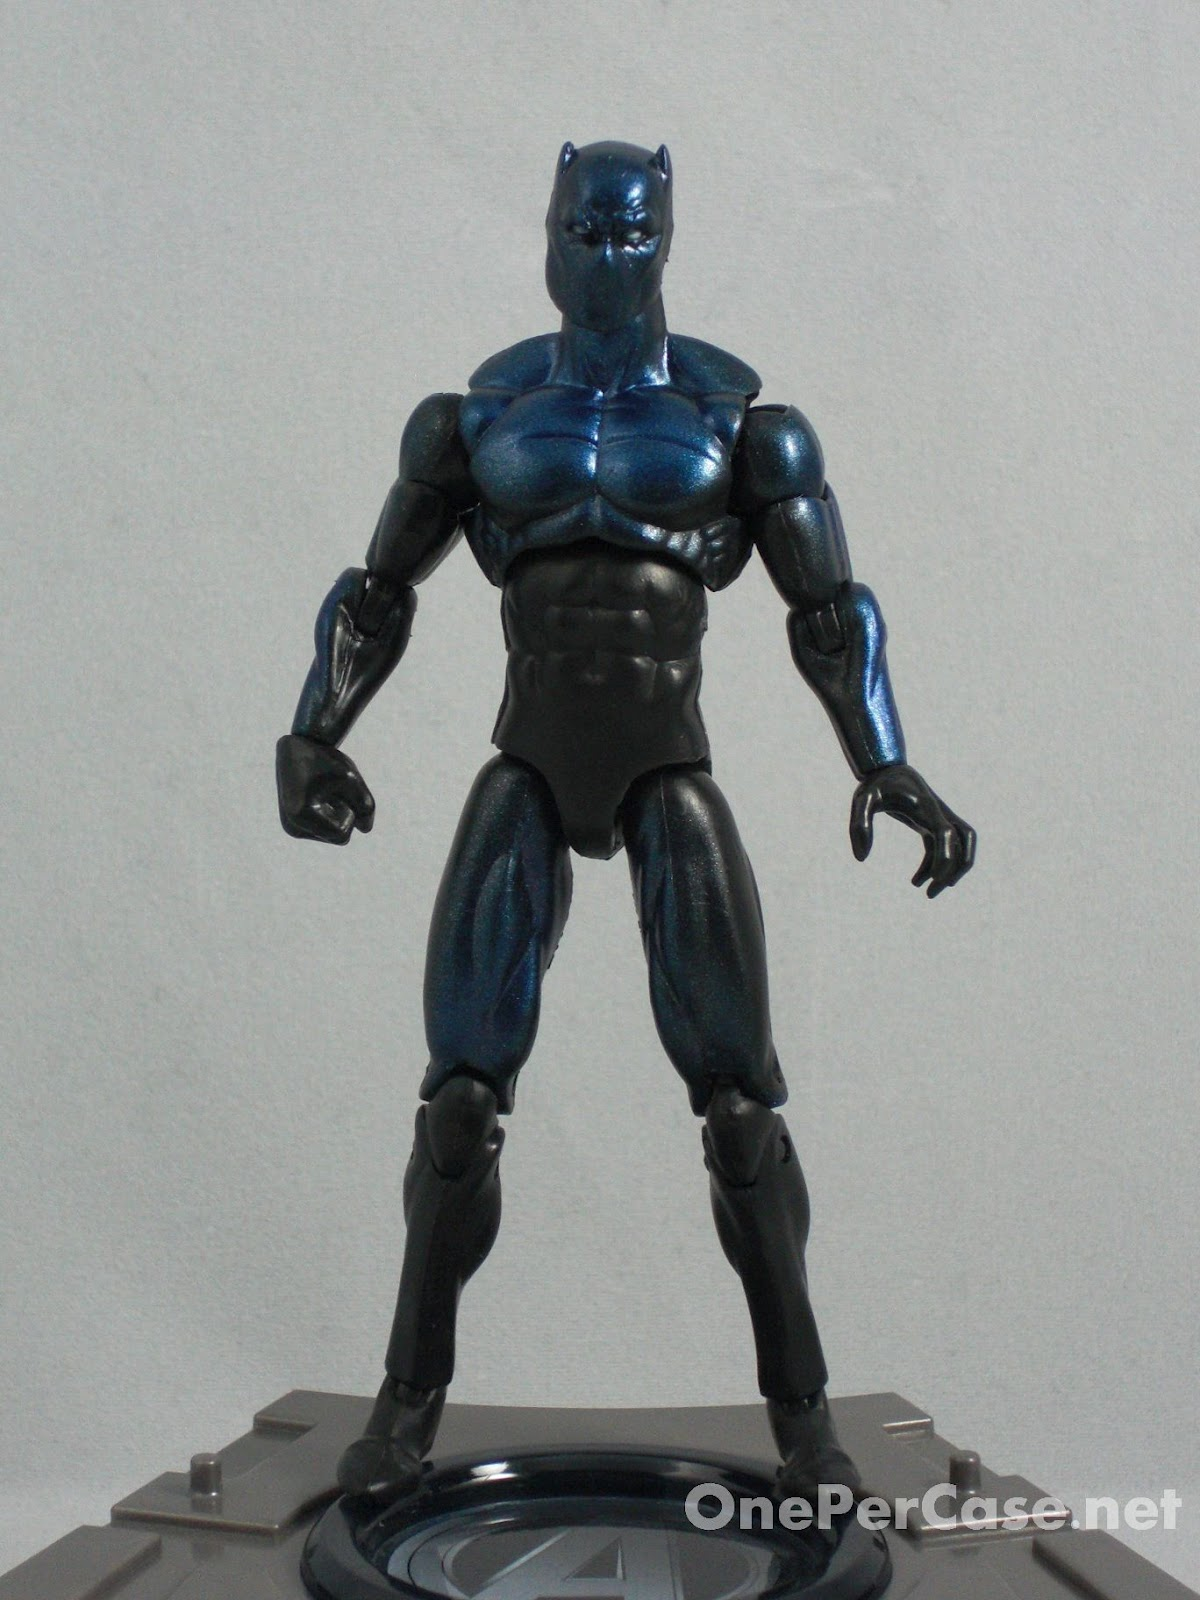 Avengers Wall Lights Toys R Us : One Per Case: Marvel Universe Avengers Light-Up Base Wave 2 - Black Panther